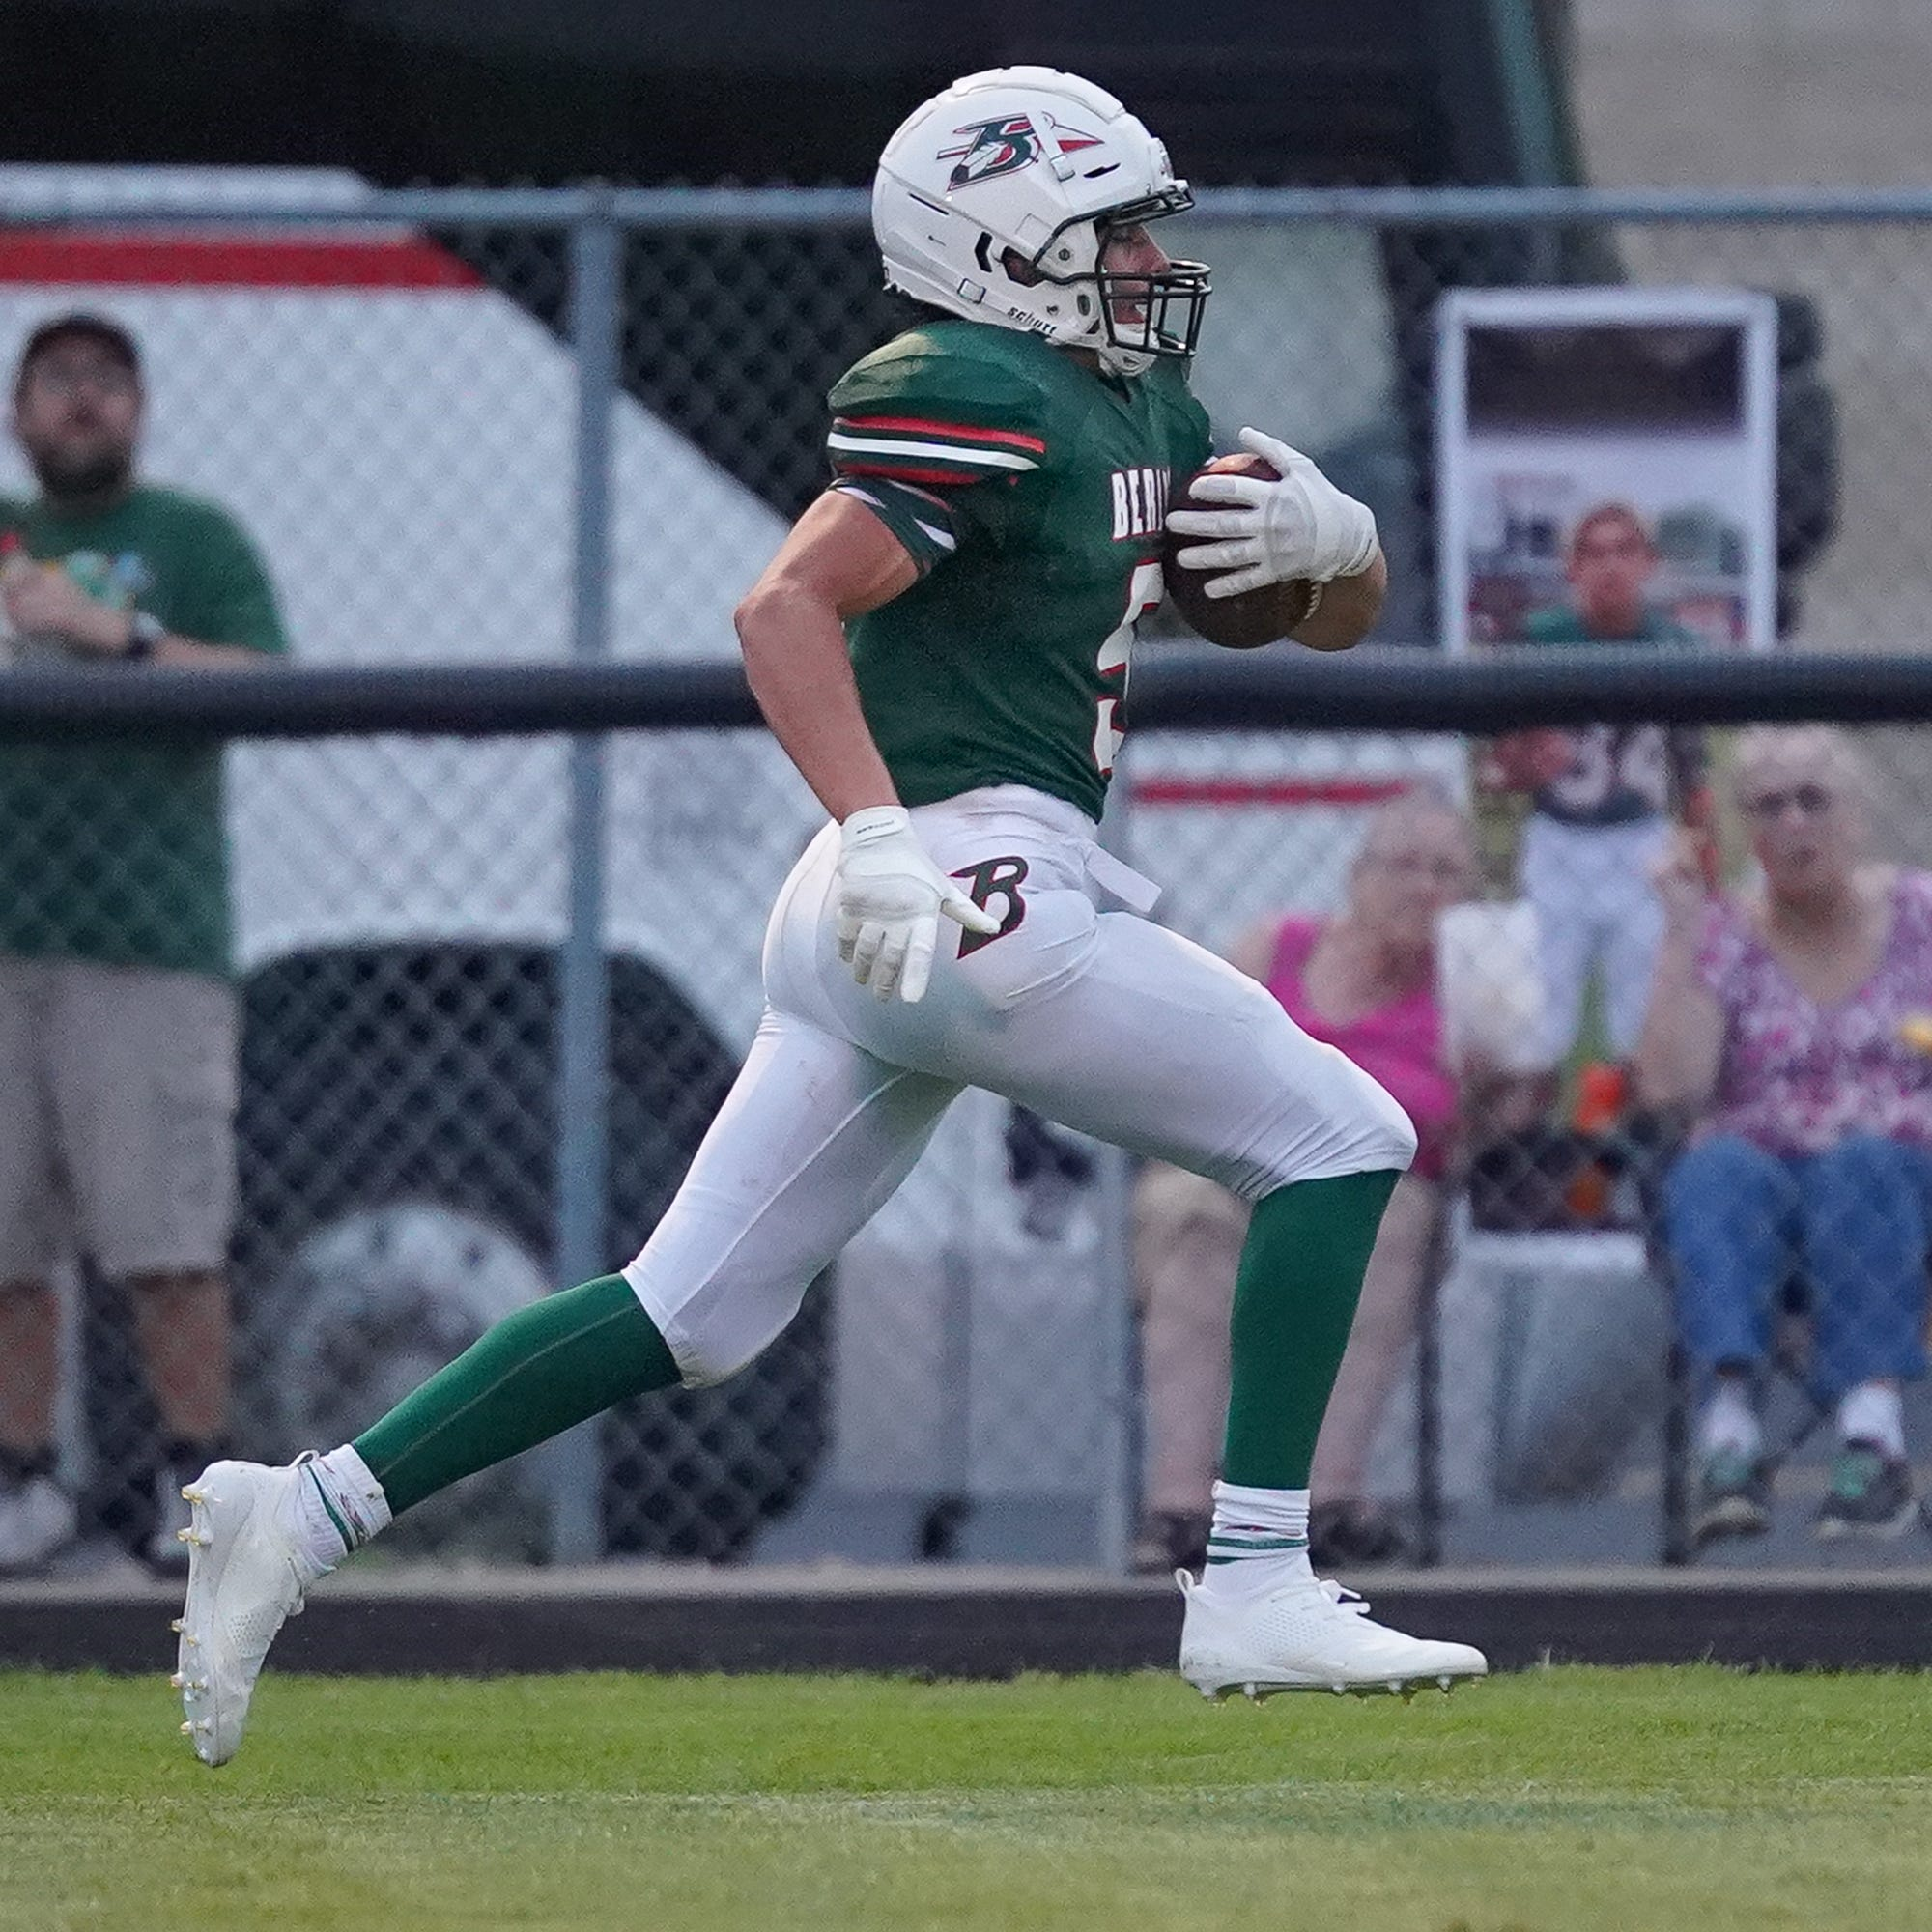 Alec Moriarty churns out yards, touchdowns to help Berlin to win